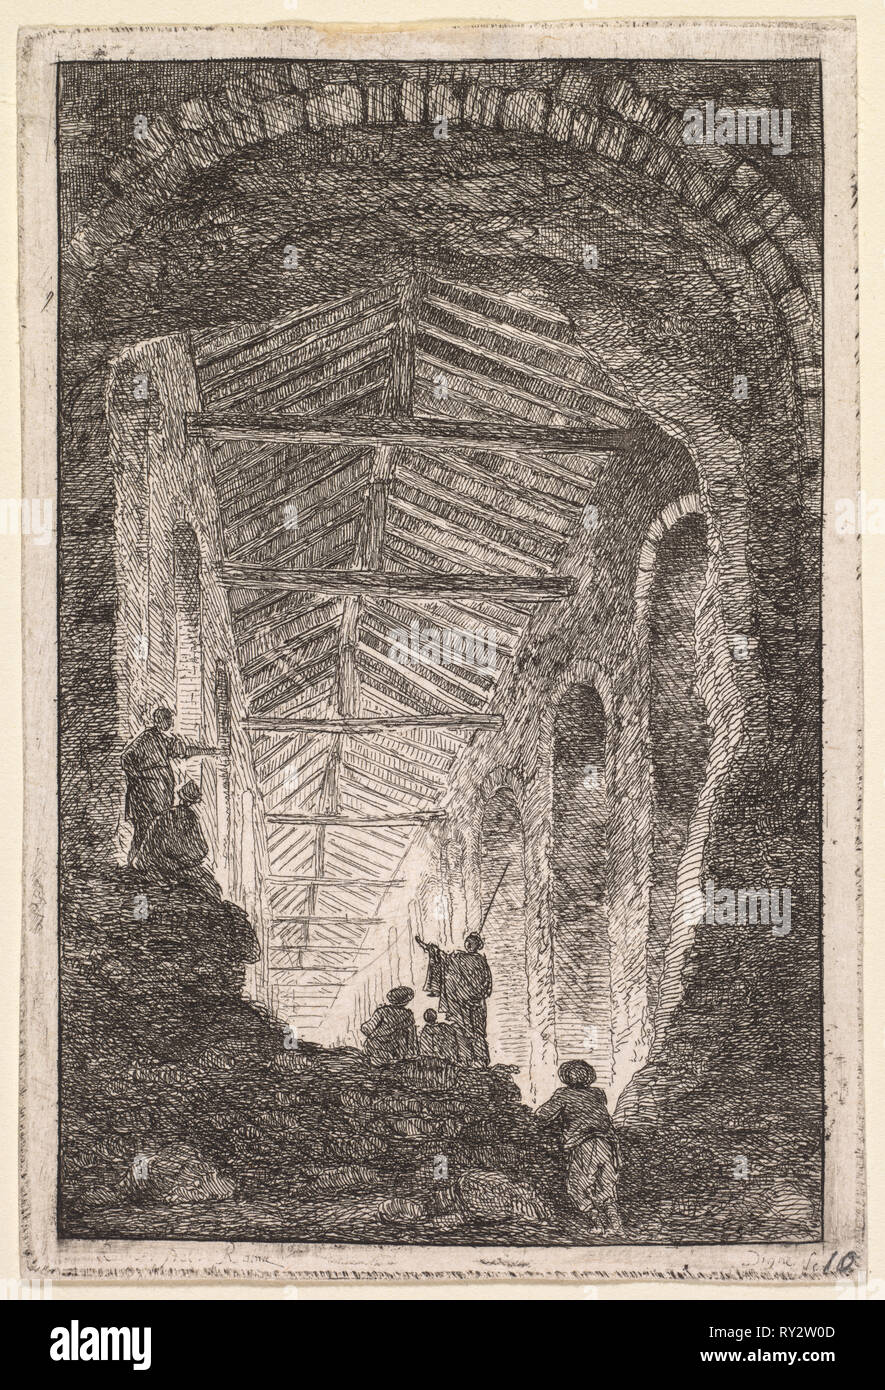 Evenings in Rome:  The Antique Gallery, 1763-1764. Hubert Robert (French, 1733-1808). Etching; platemark: 13.8 x 9.3 cm (5 7/16 x 3 11/16 in.); border: 13.1 x 8.4 cm (5 3/16 x 3 5/16 in - Stock Image